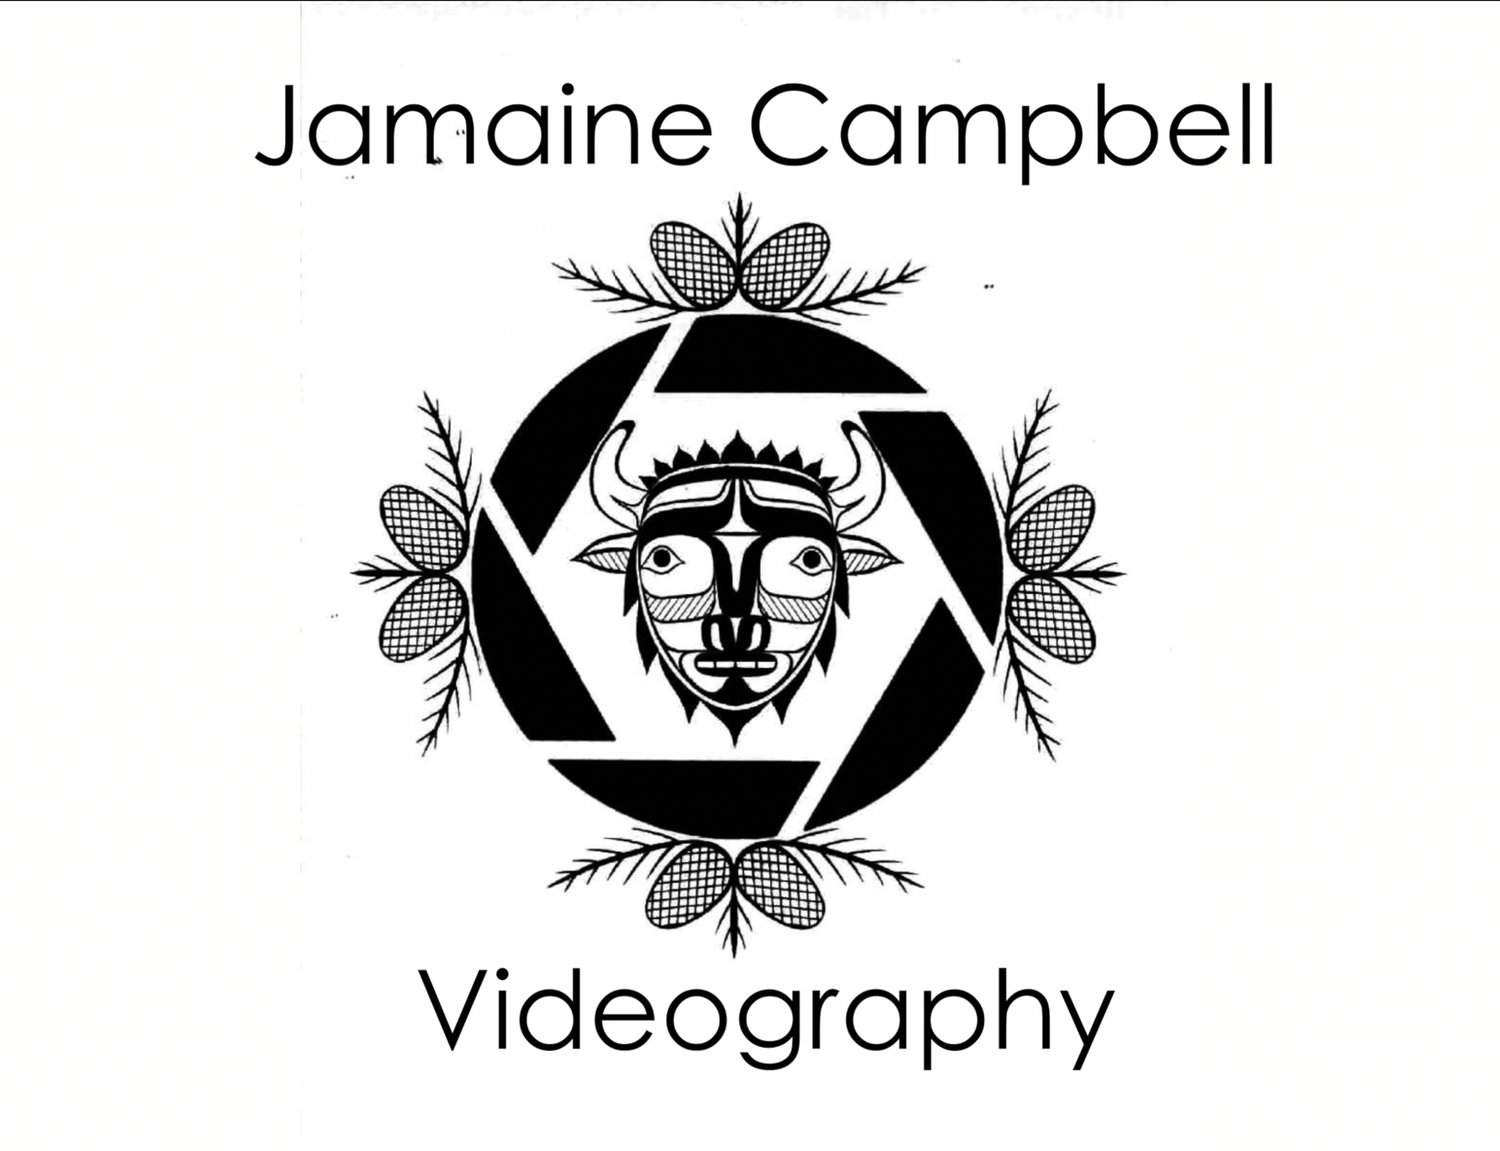 Jamaine Campbell Videography